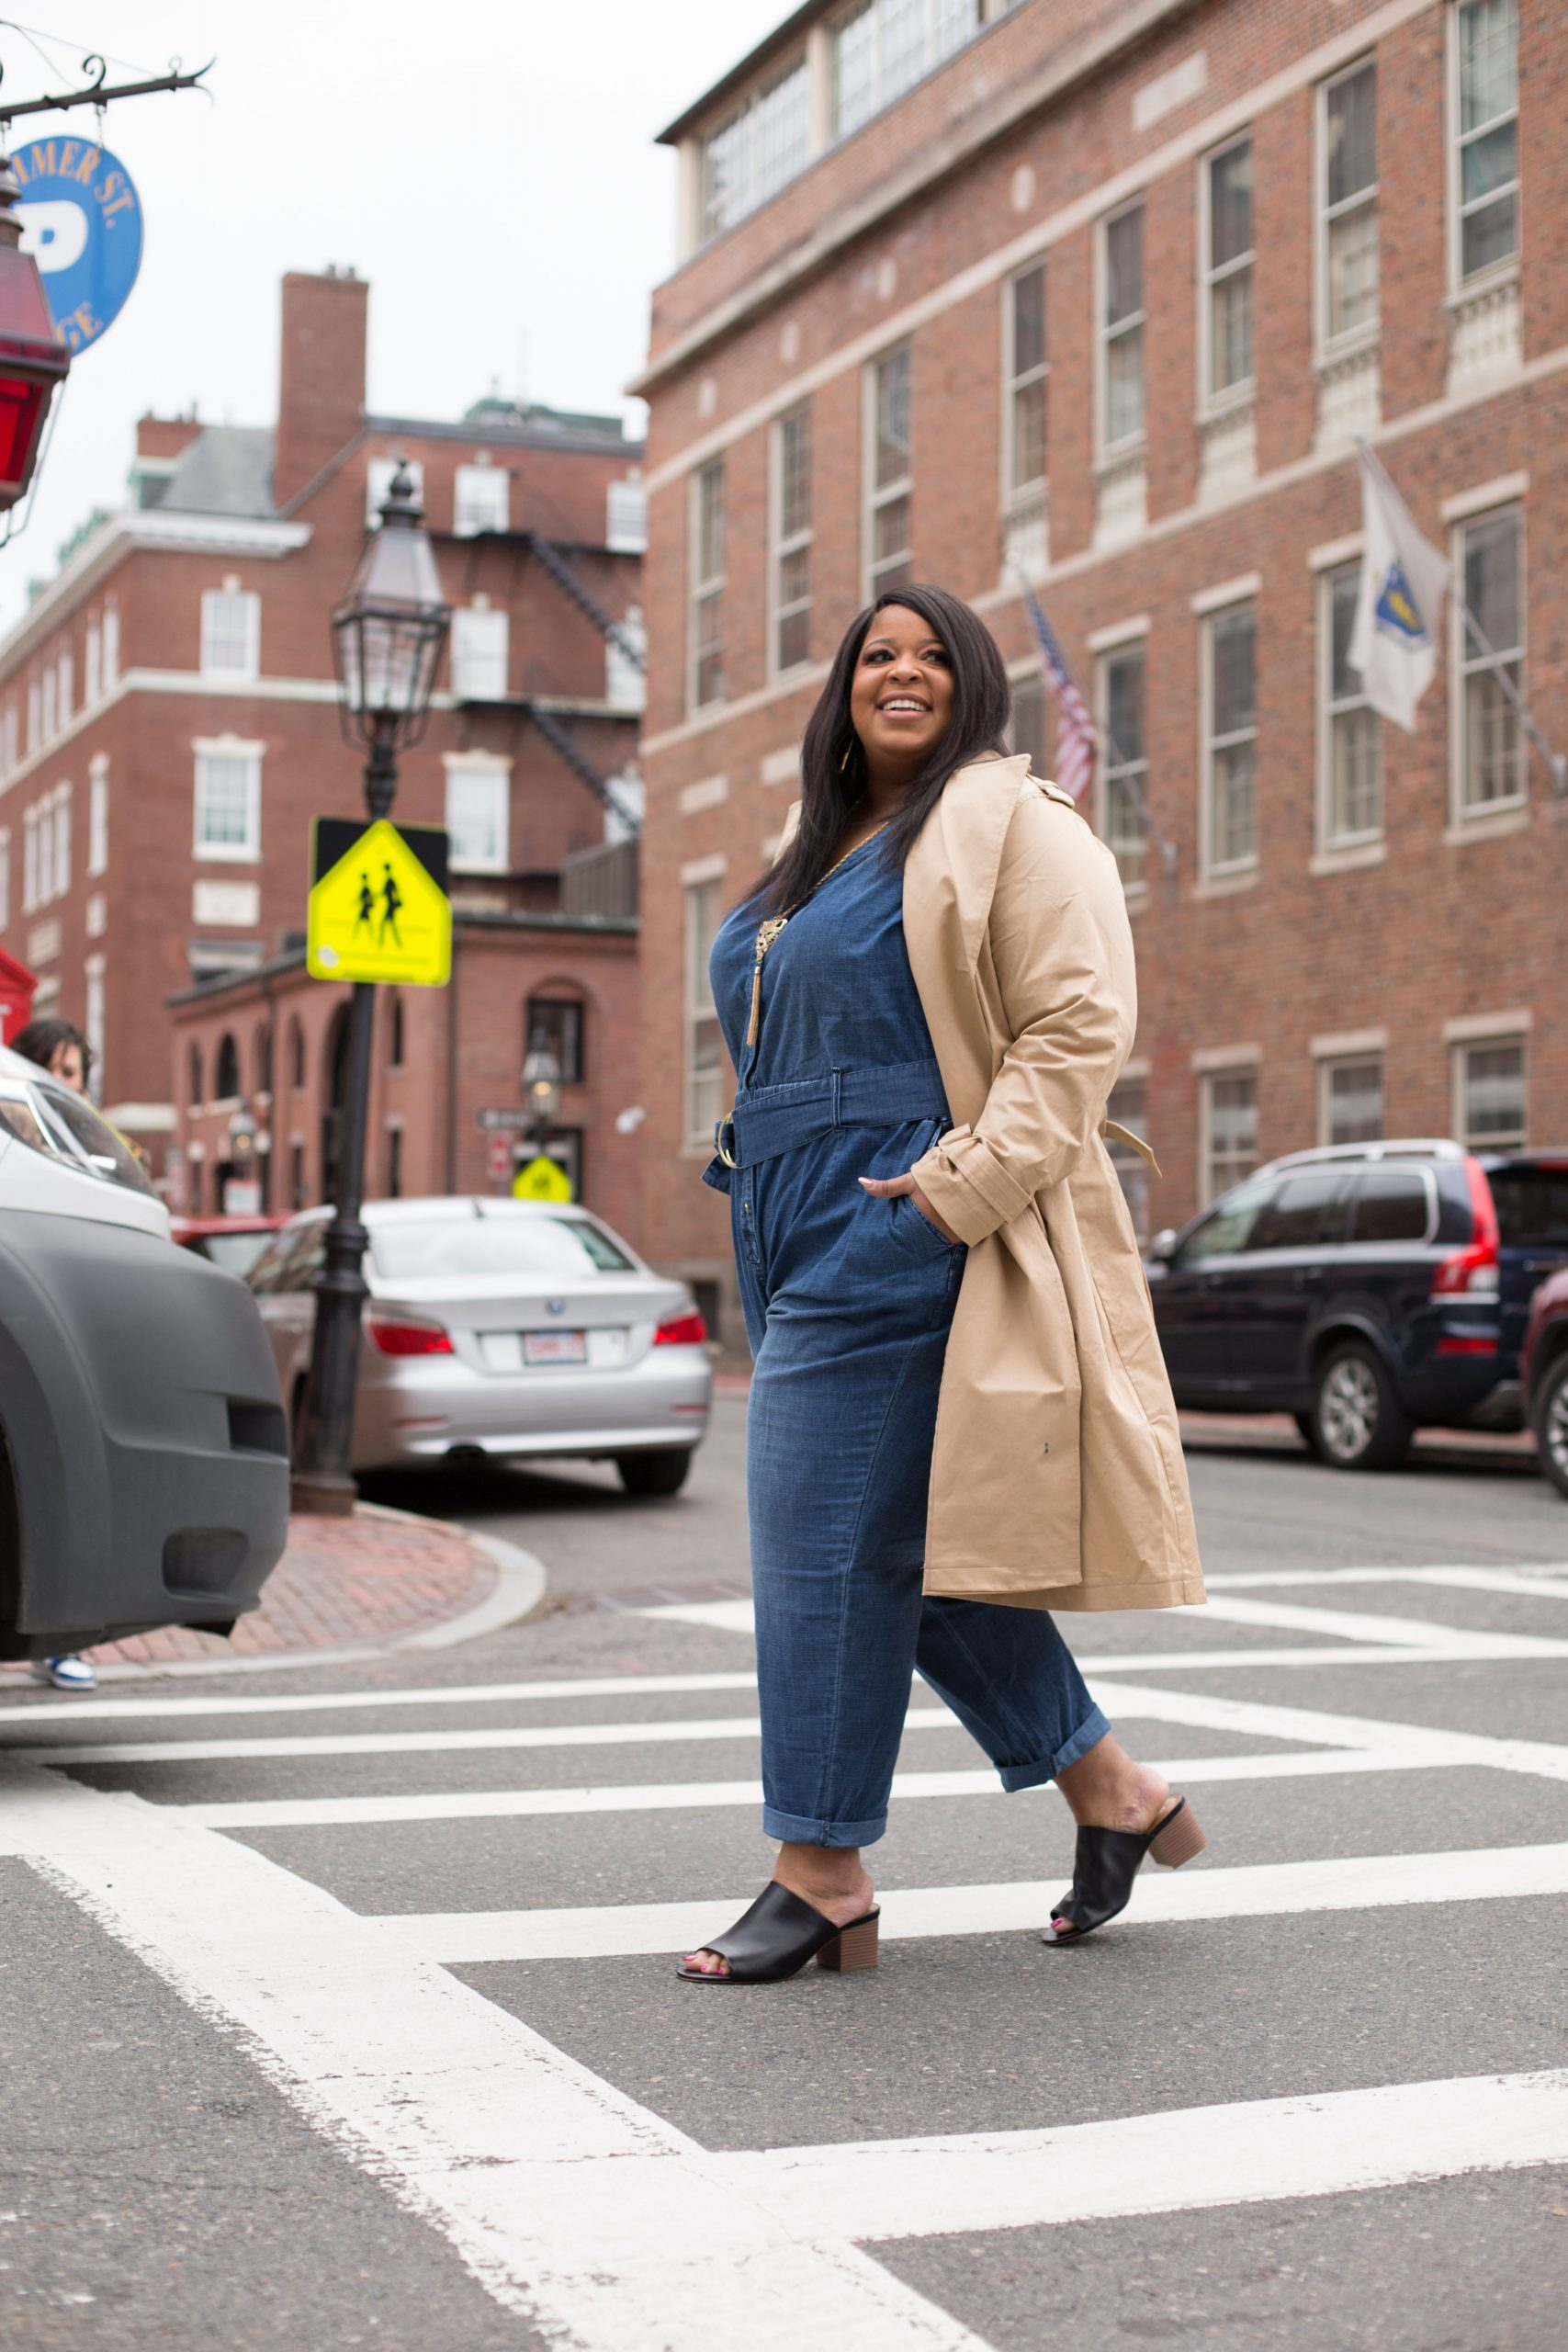 Refreshing Your Closet with Lane Bryant